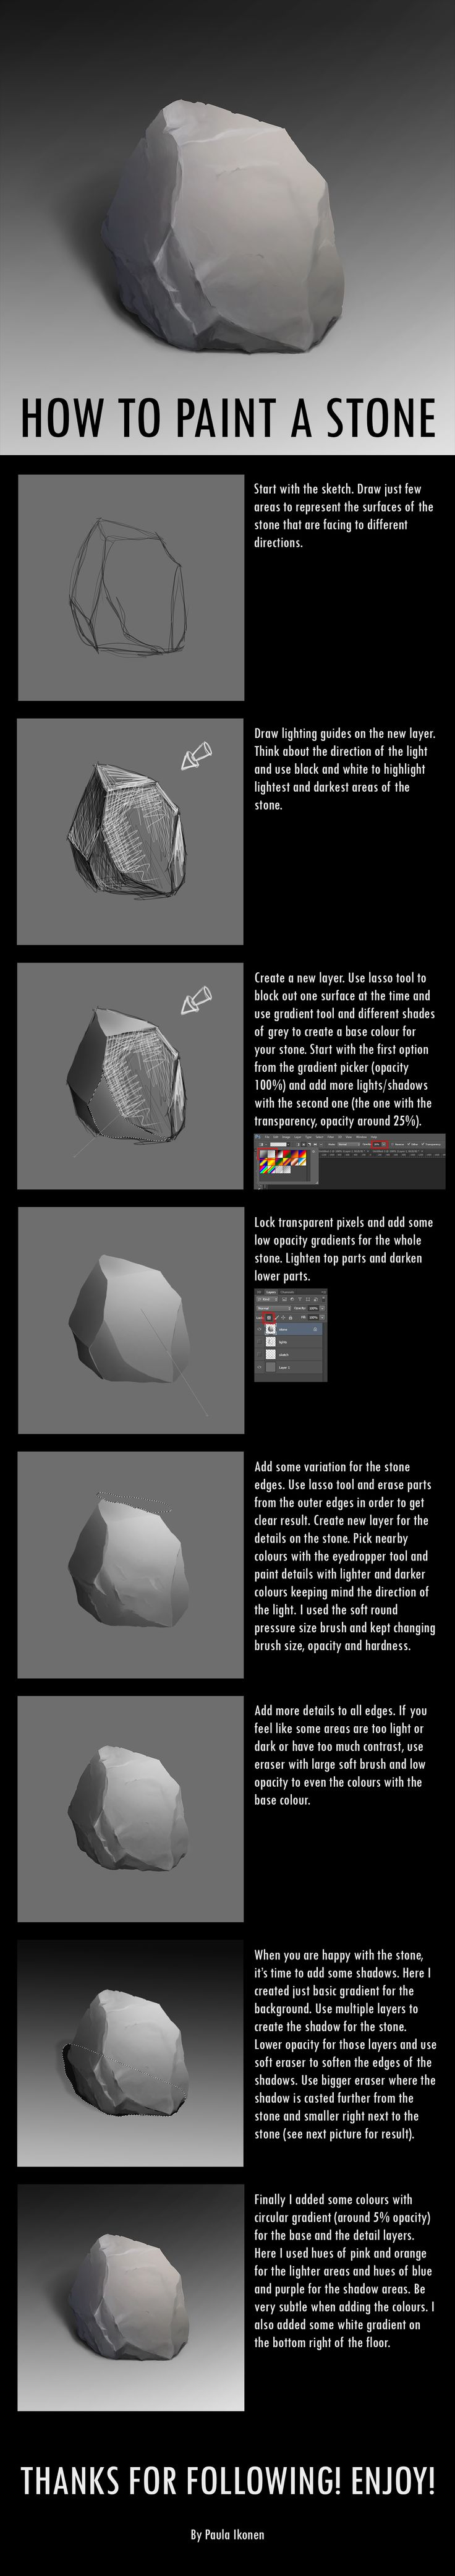 A stone tutorial for our uni course #rock #stone #digital #painting #tutorial #photoshop